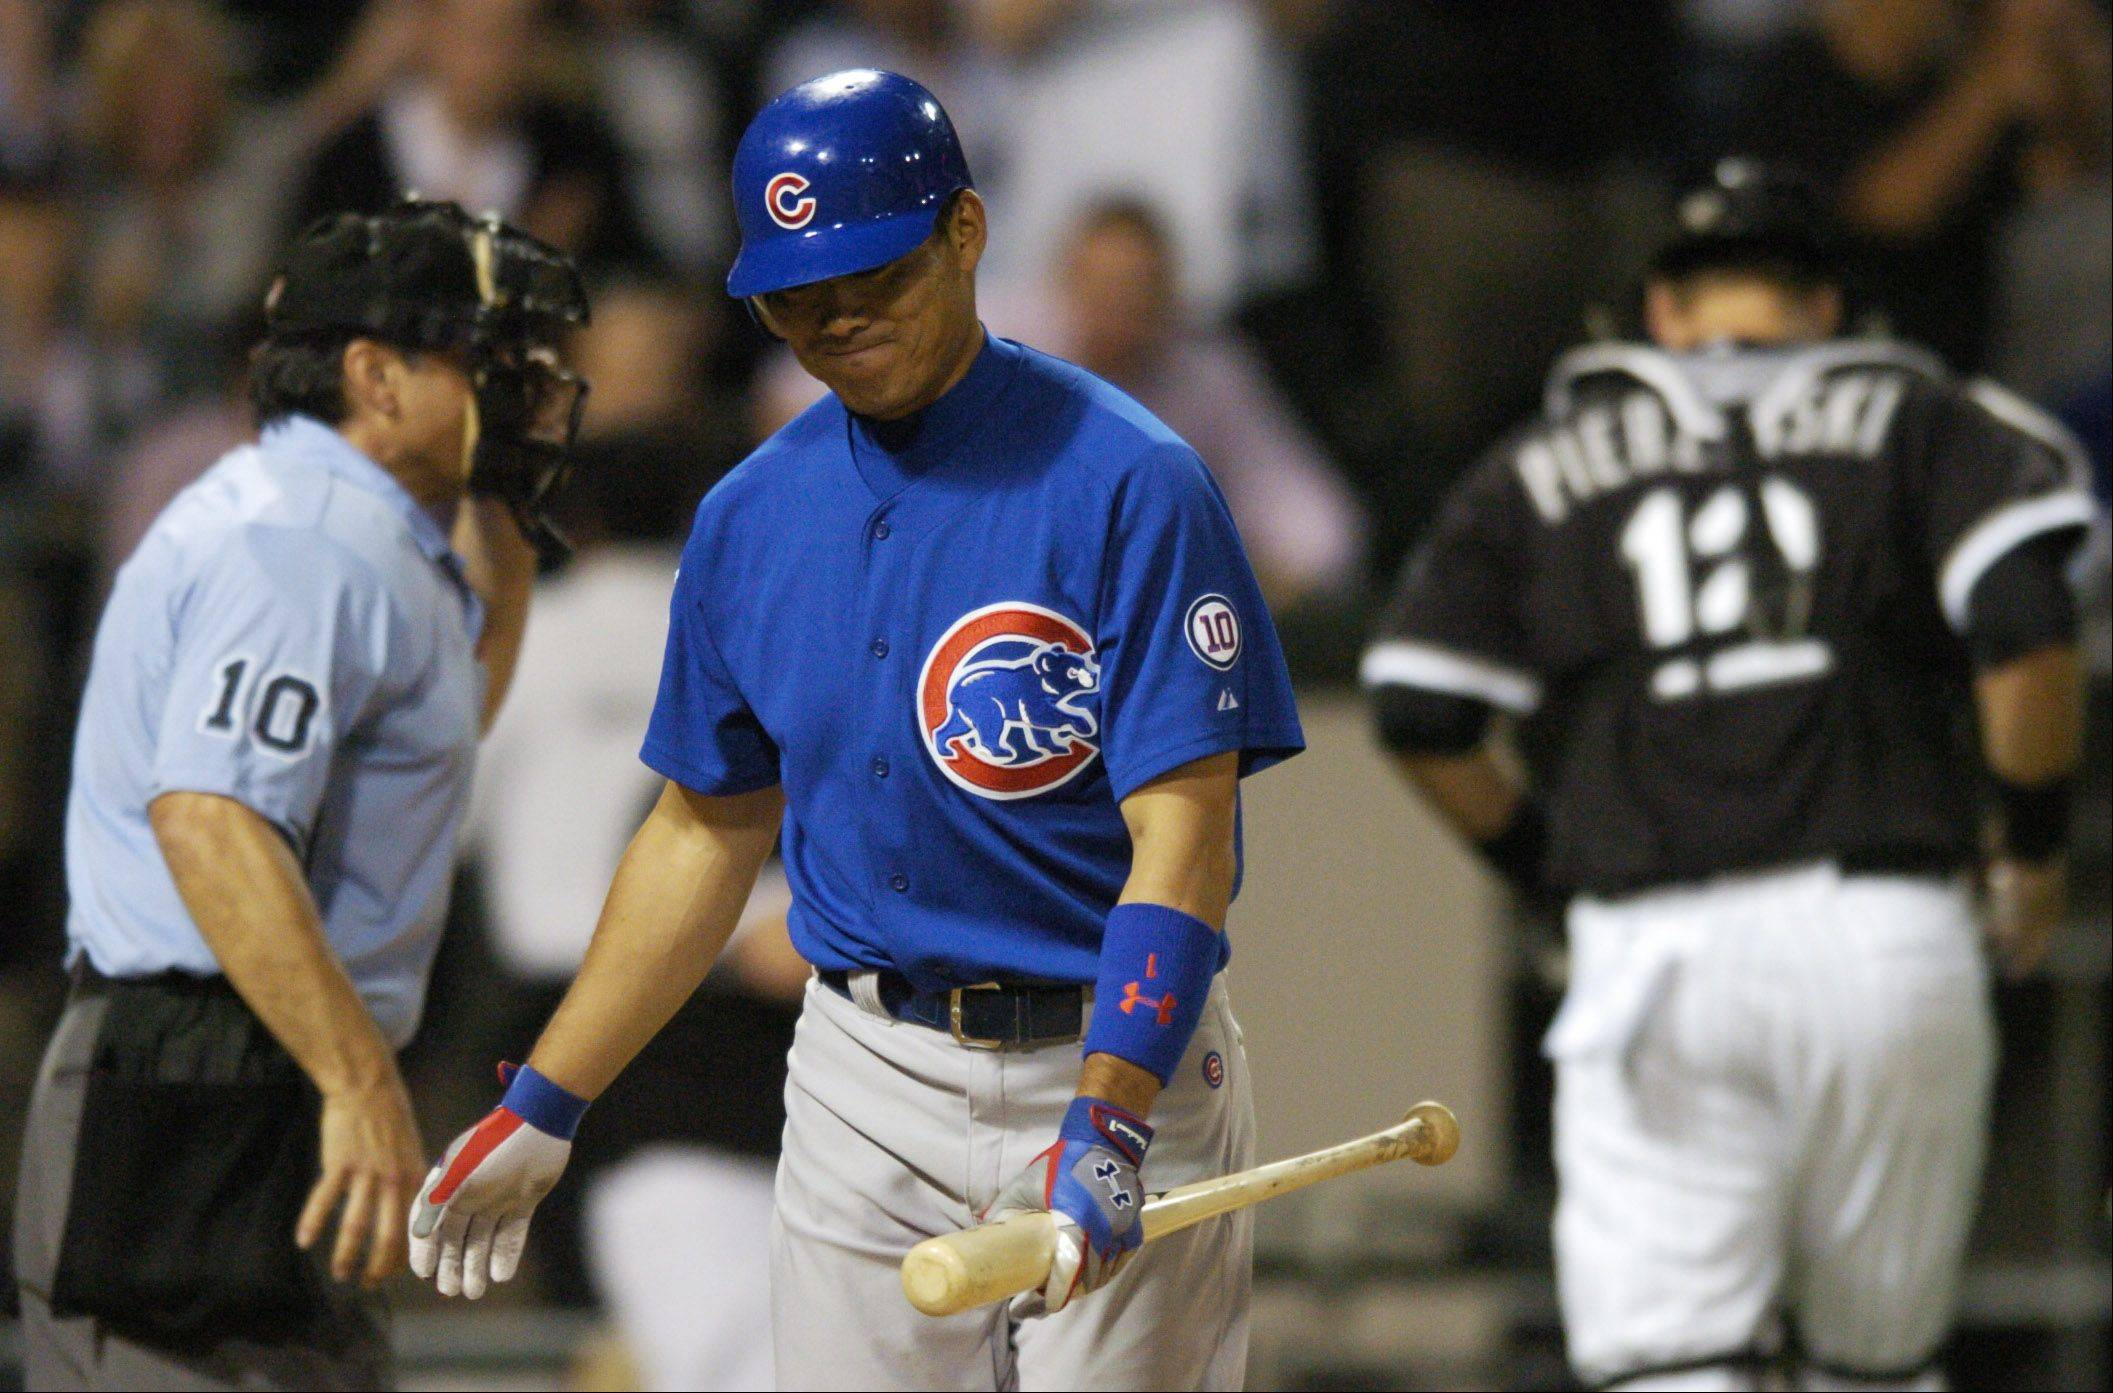 Kosuke Fukudome walks back to the dugout after striking out with a man on thrid to end the eighth during Wednesday's 4-3 loss to the Sox at U.S. Cellular Field.